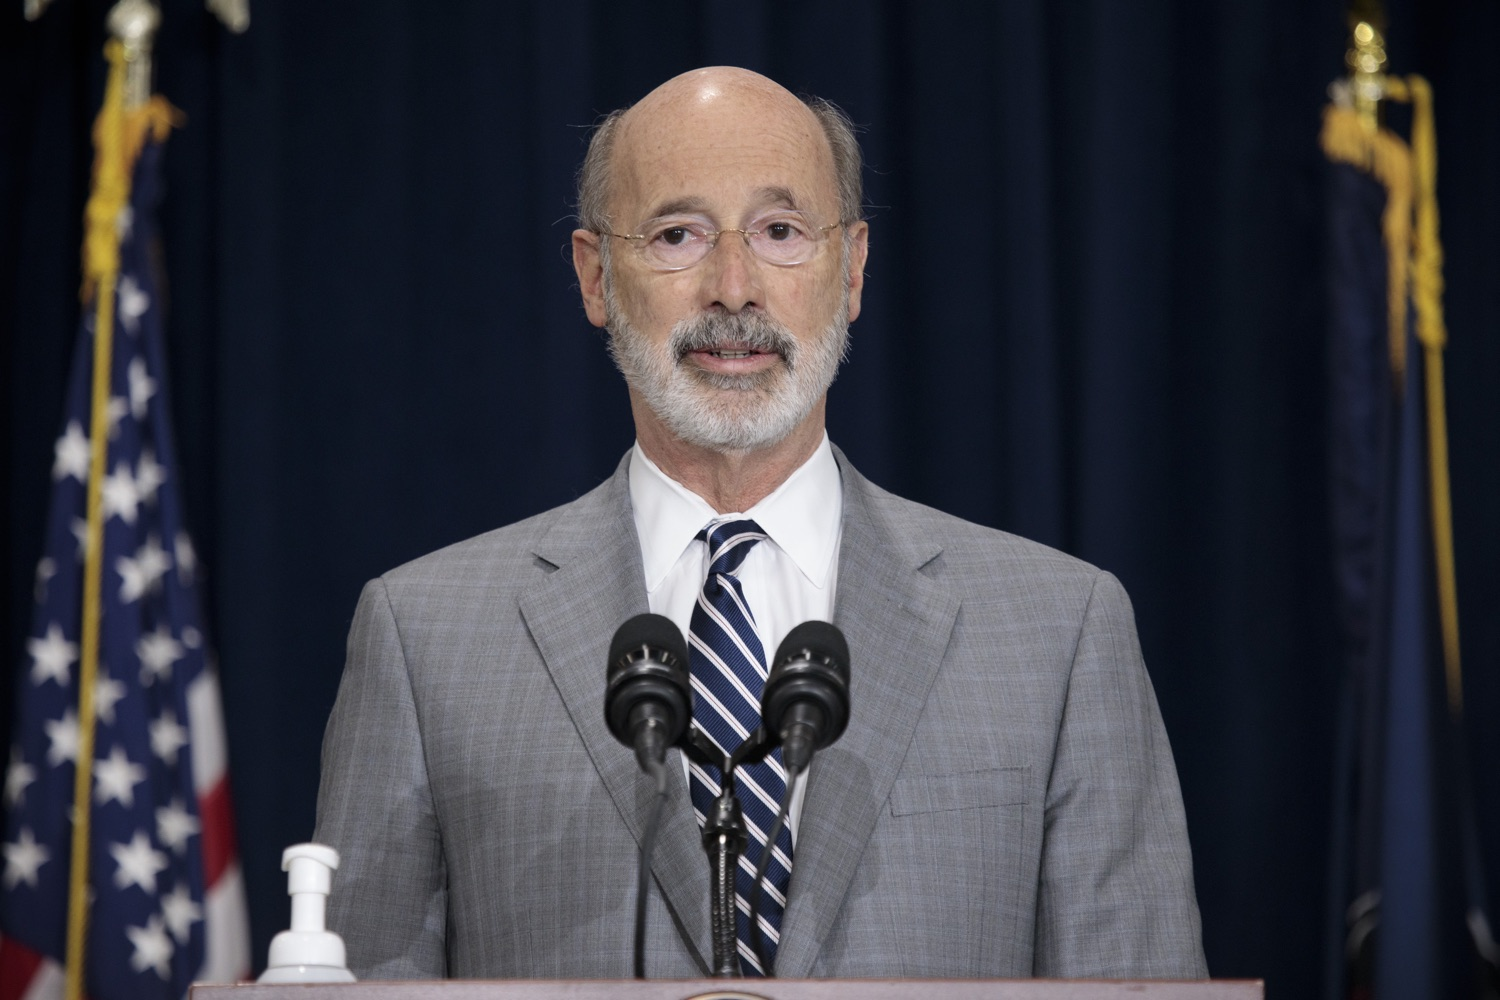 """<a href=""""https://filesource.wostreaming.net/commonwealthofpa/photo/18380_gov_election_update_dz_005.jpg"""" target=""""_blank"""">⇣Download Photo<br></a>Pennsylvania Governor Tom Wolf speaks to the press.  Governor Tom Wolf and Pennsylvania Secretary of State Kathy Boockvar gave an update on the election process in Pennsylvania. NOVEMBER 04, 2020 - HARRISBURG, PA"""